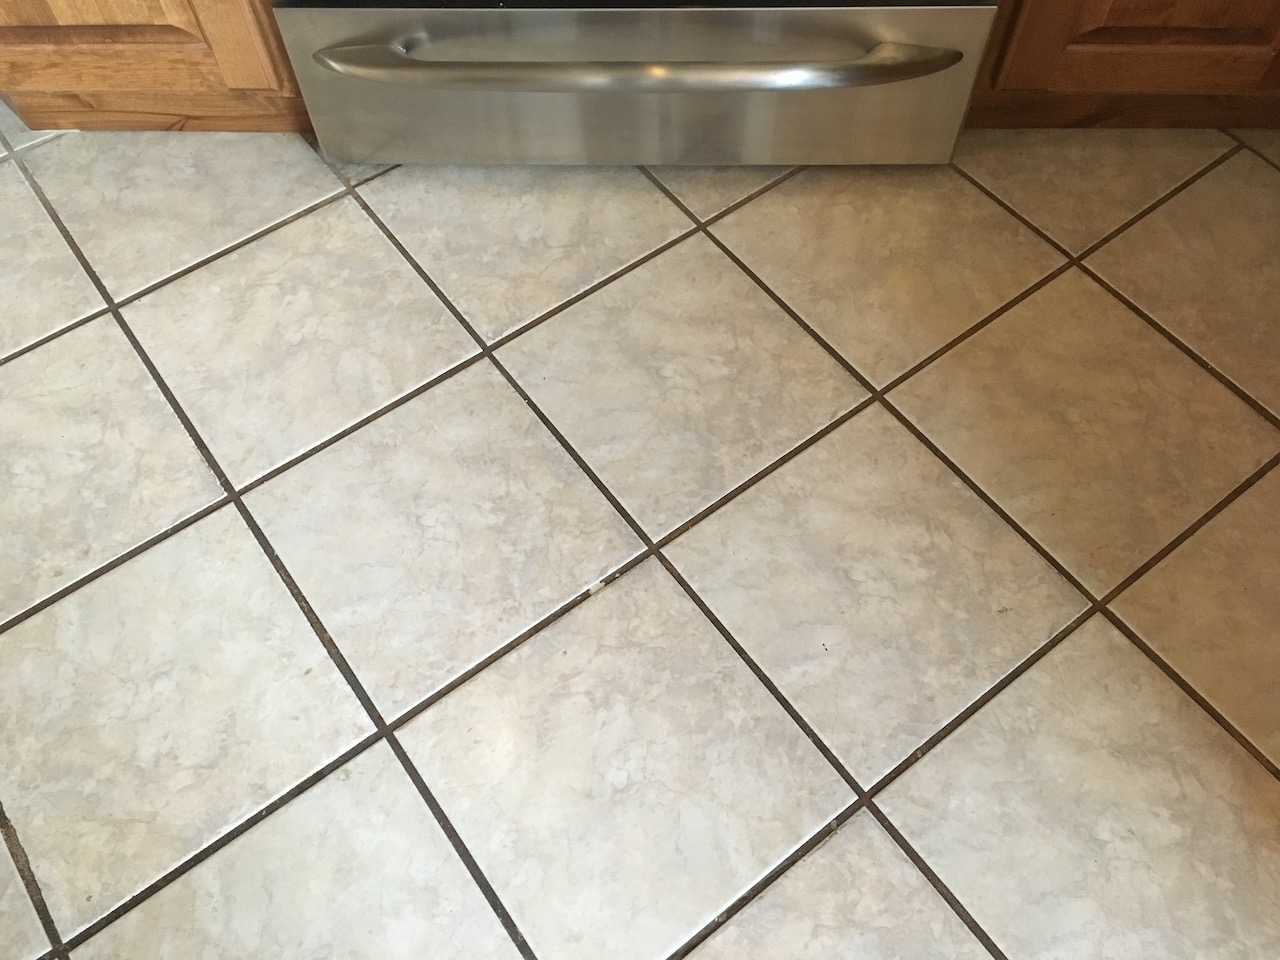 Nice tile, but the homeowner hated the color of the grout